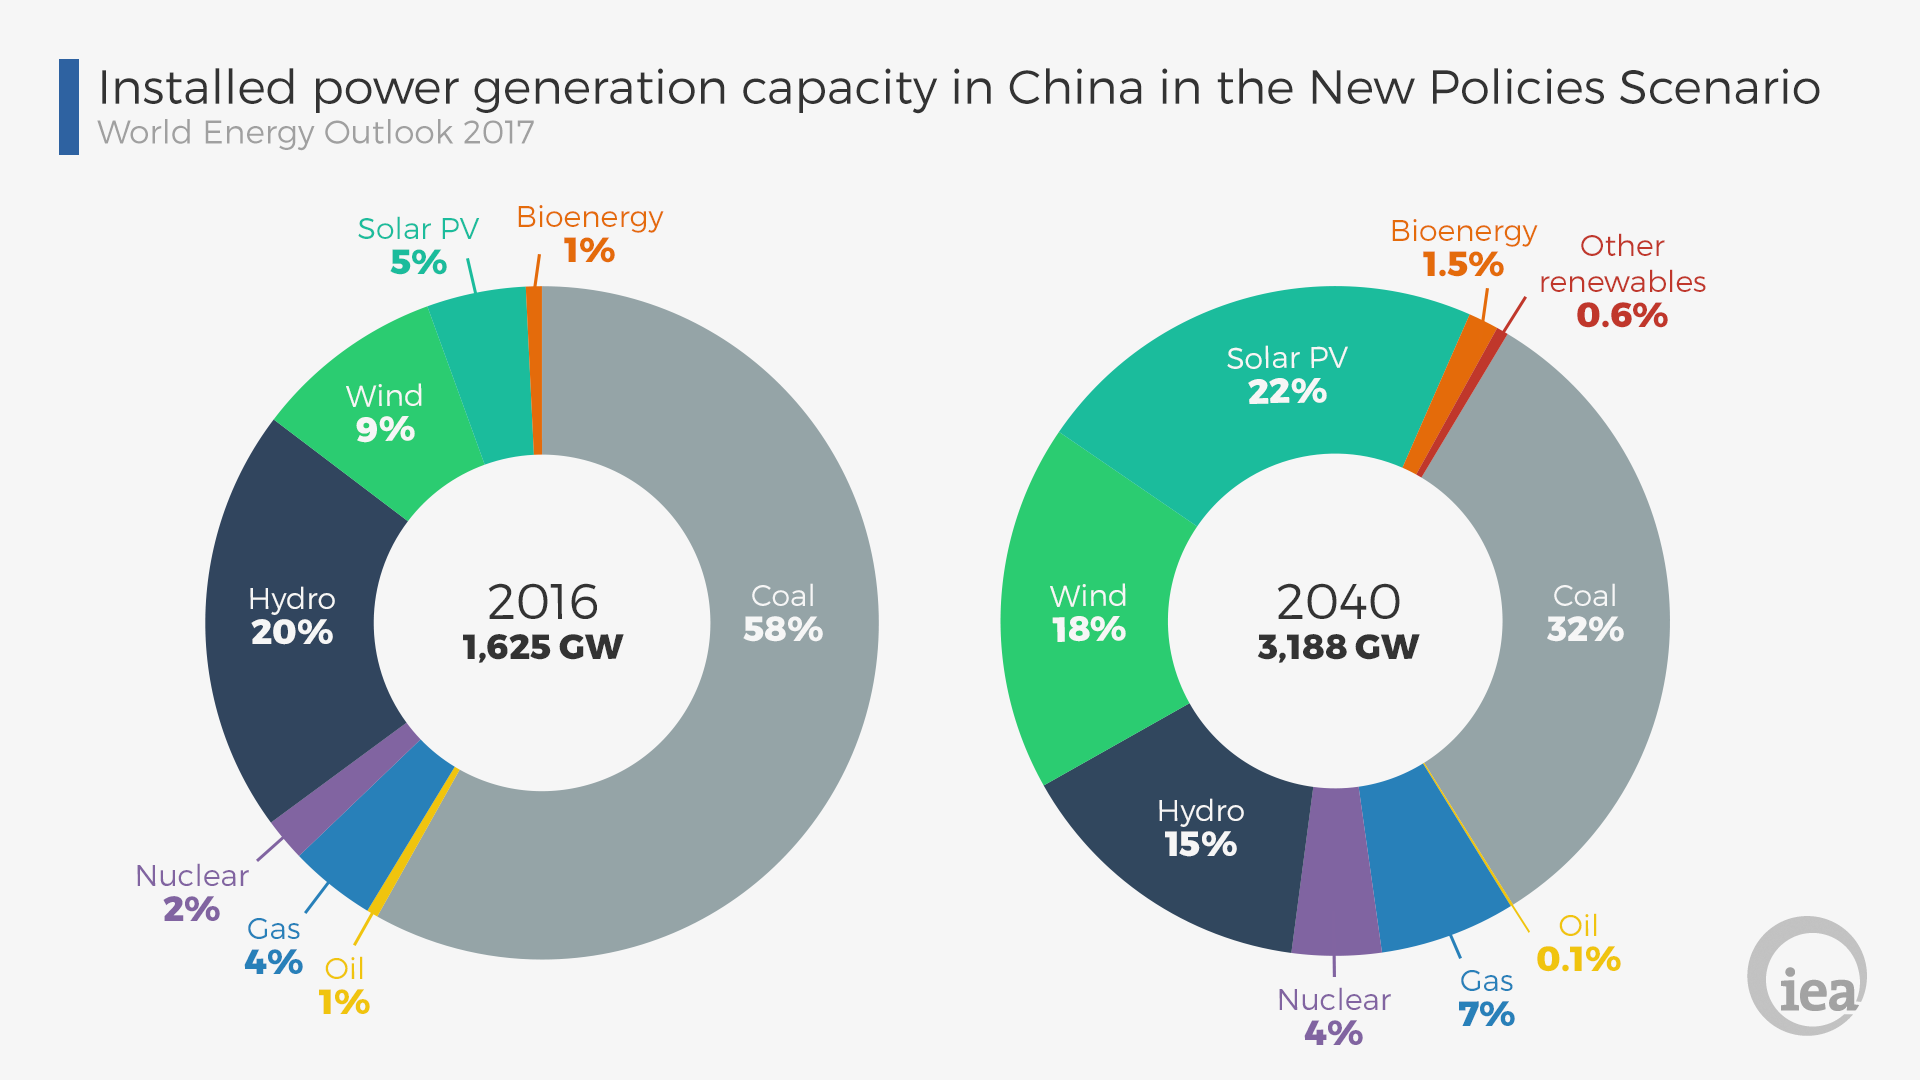 GRAPHchinainstalledpowergenerationcapacityv2